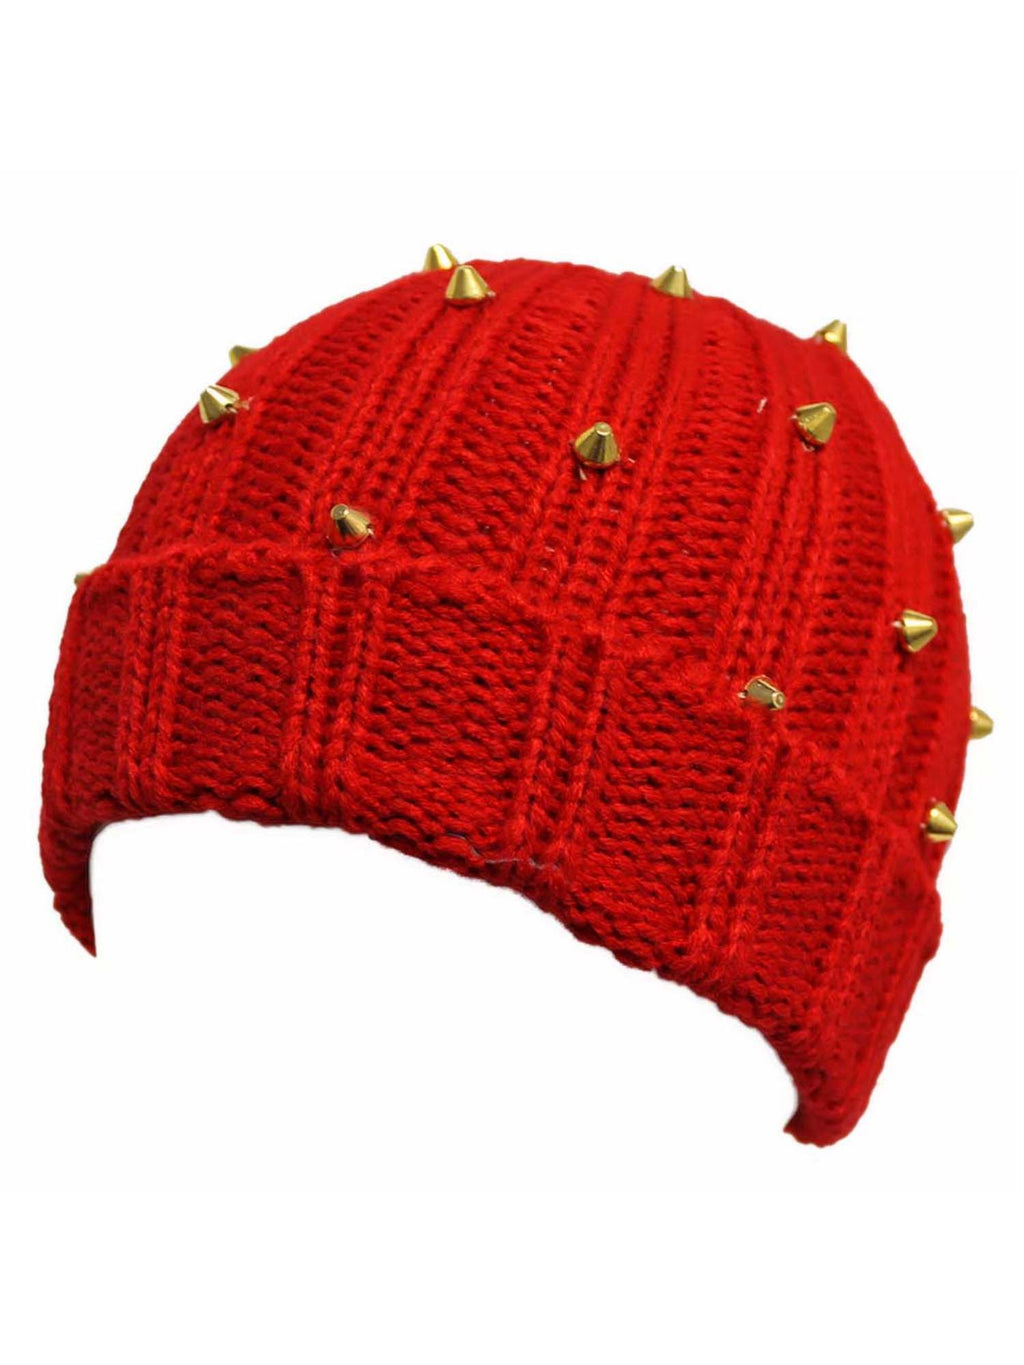 Red Knit Beanie Cap Hat With Gold Spikes